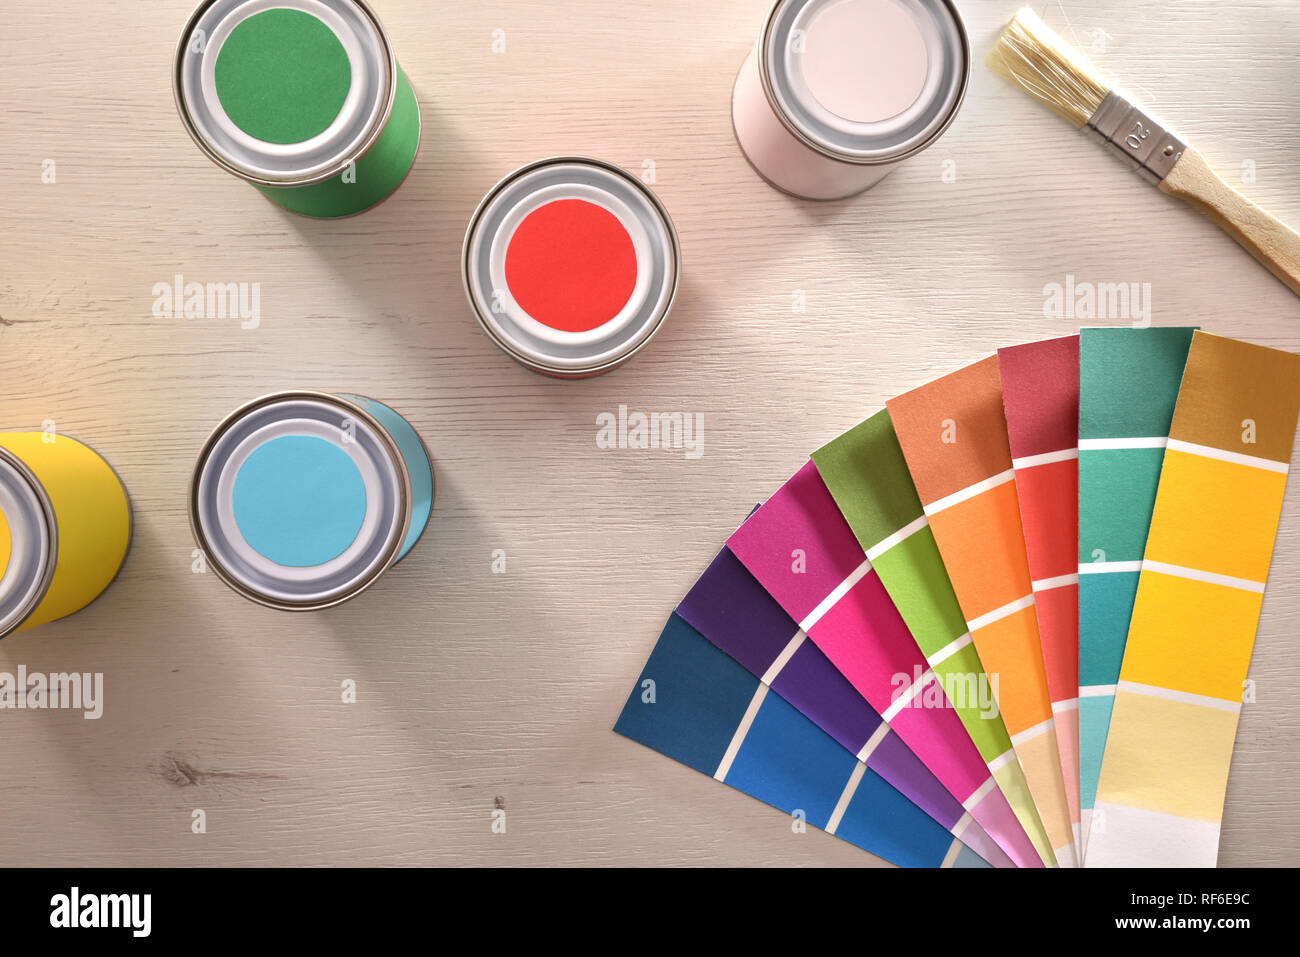 Colored paints and color palette on white table for renovation of materials. Top view. Horizontal composition. Stock Photo